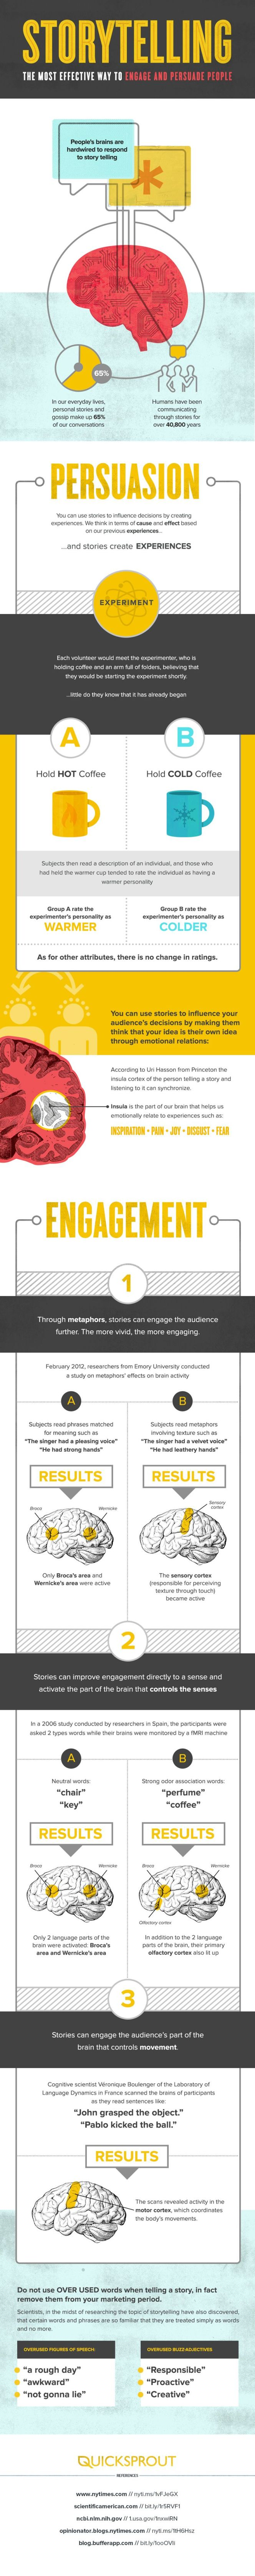 Storytelling - the Most Effective Way to Engage and Persuade People